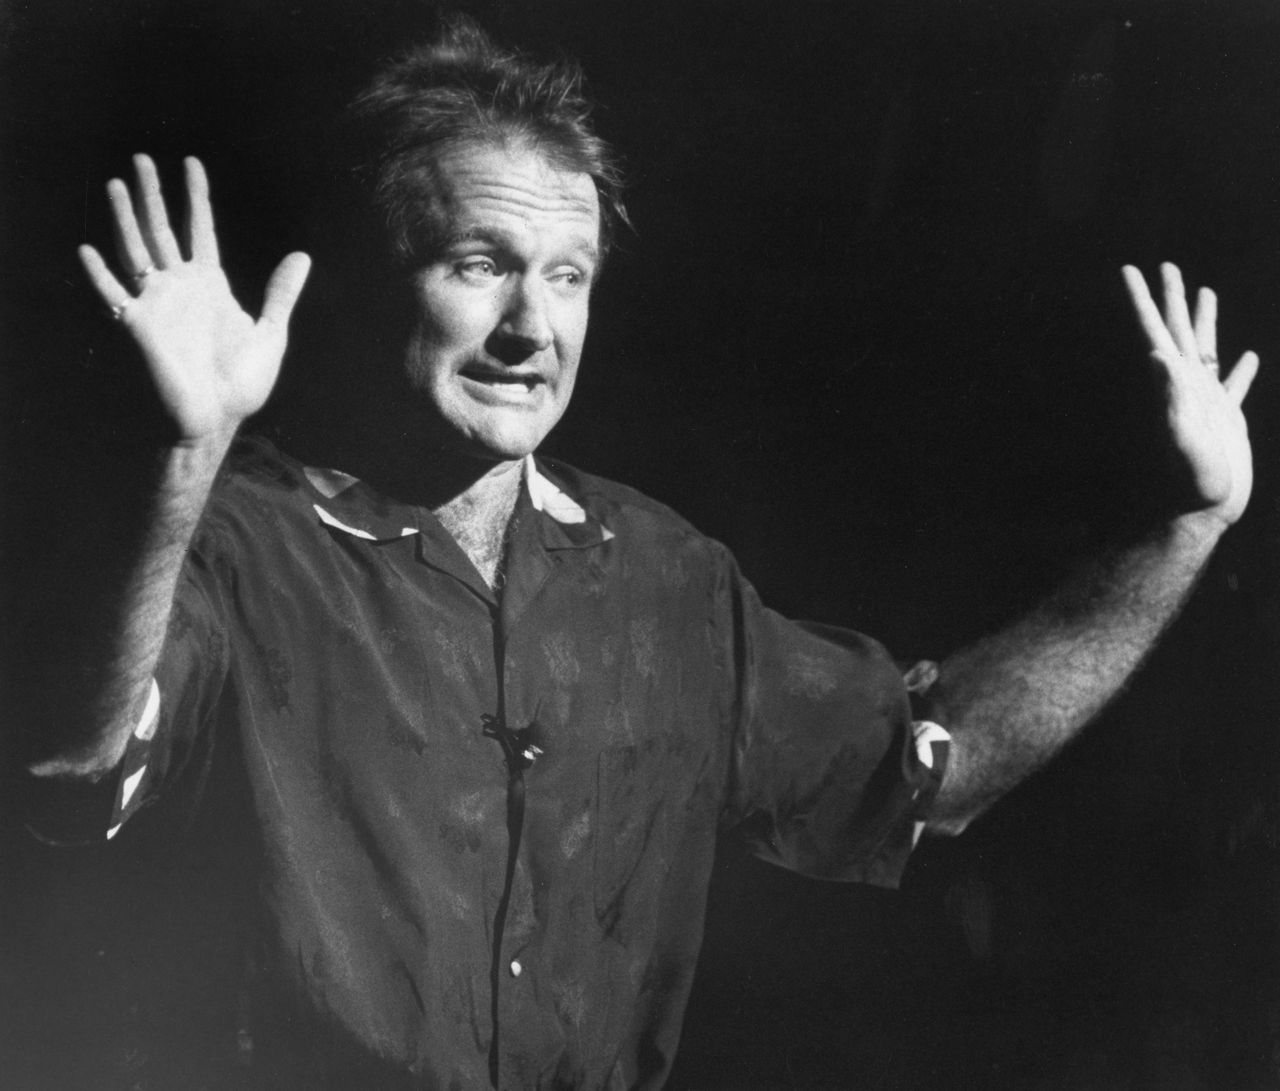 Robin Williams performs stand-up comedy during a fundraiser to benefit John Kerry's Senate campaign at the Wang Center in Boston on Oct. 23, 1990.